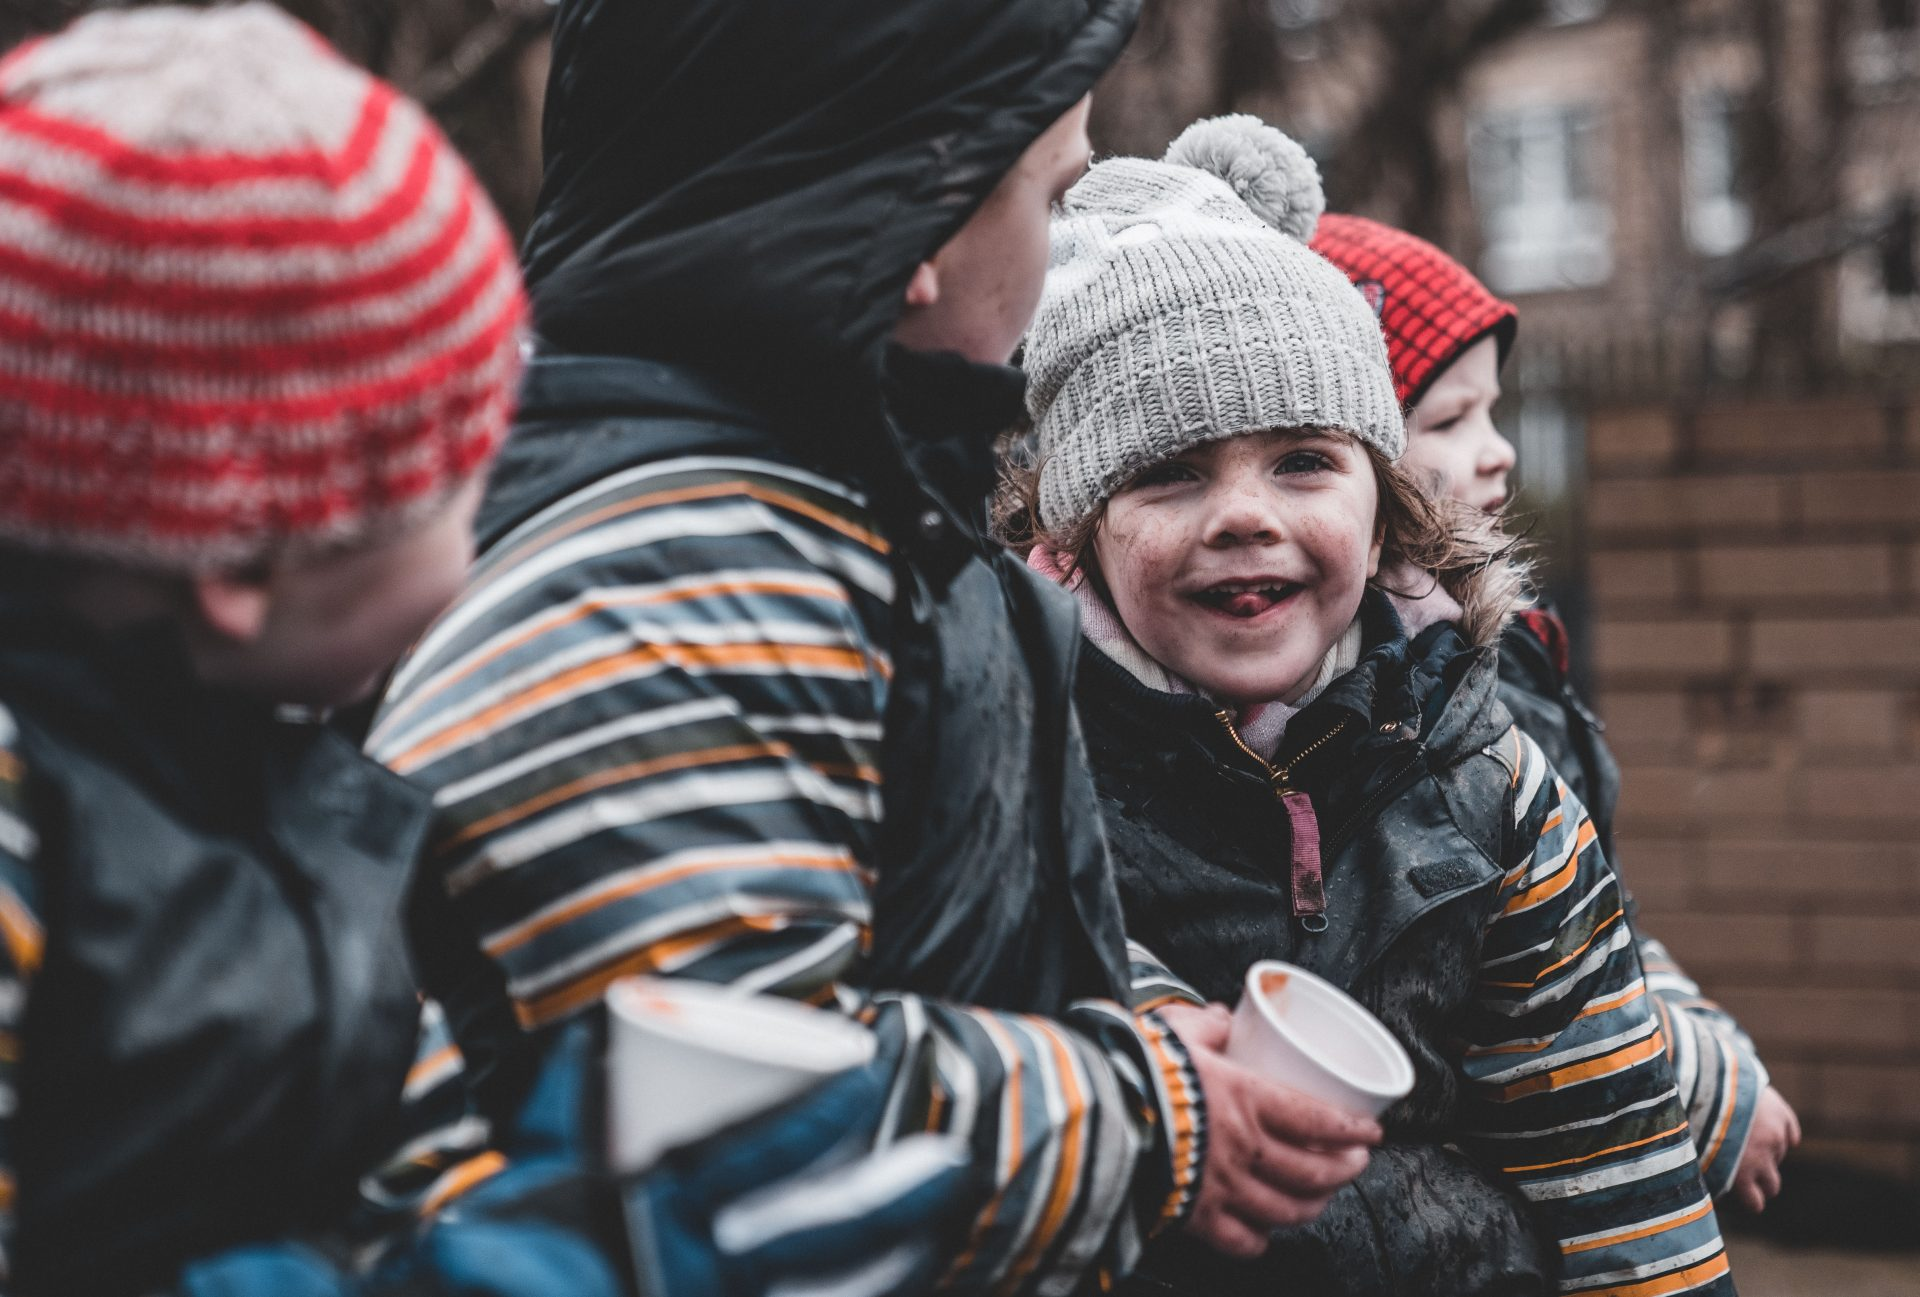 National Position Statement on Outdoor Play relaunched